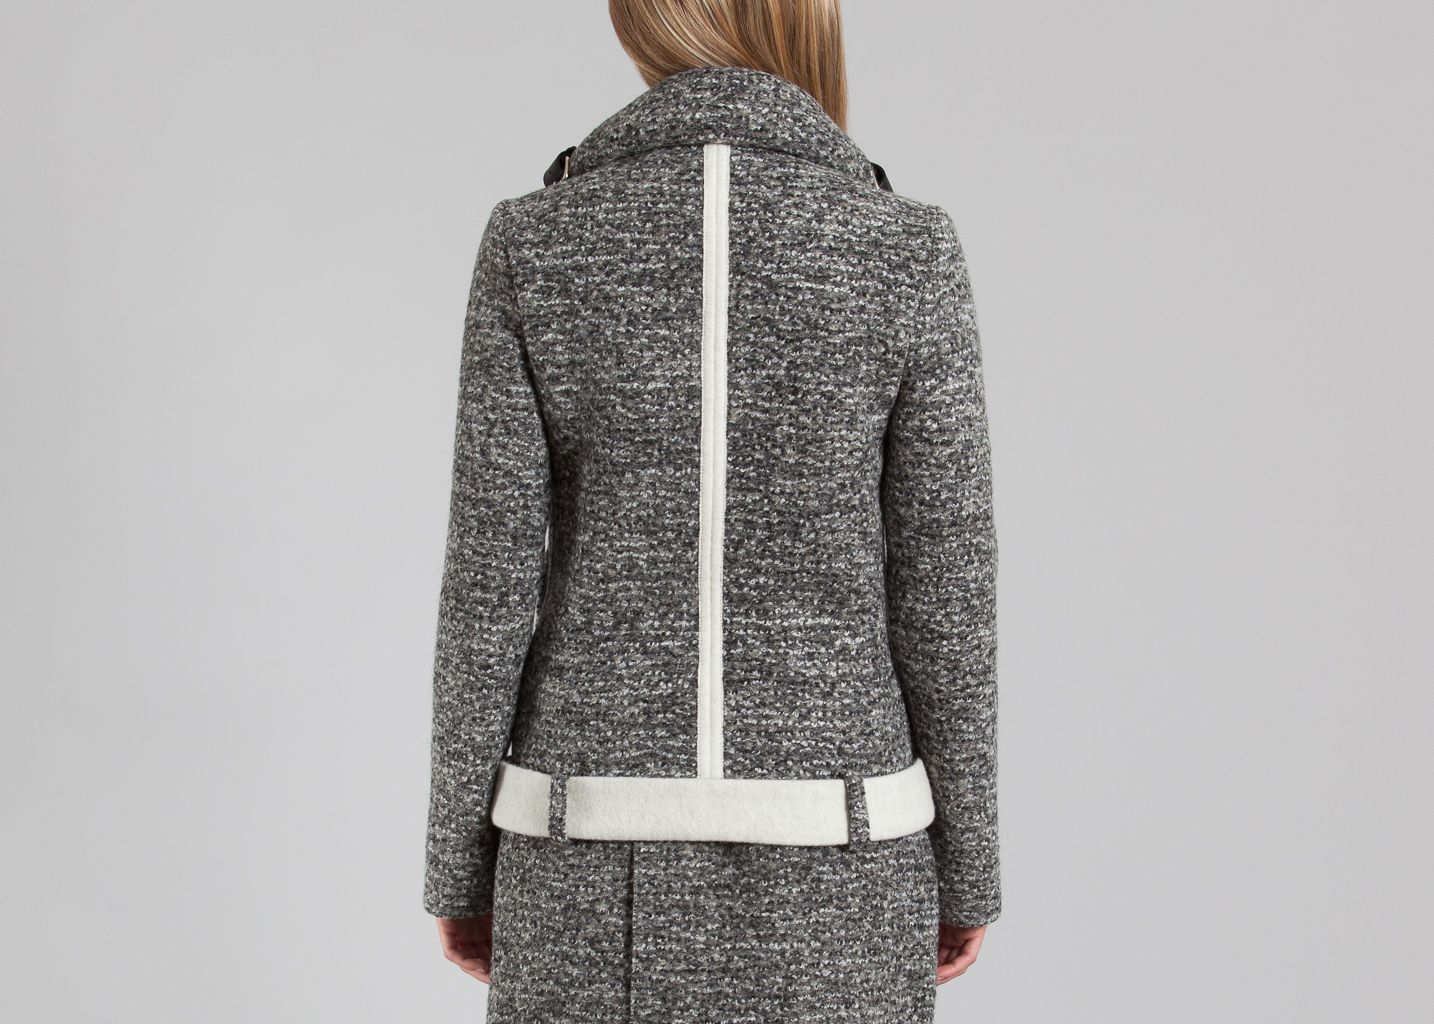 Wool Jacket - JC de Castelbajac